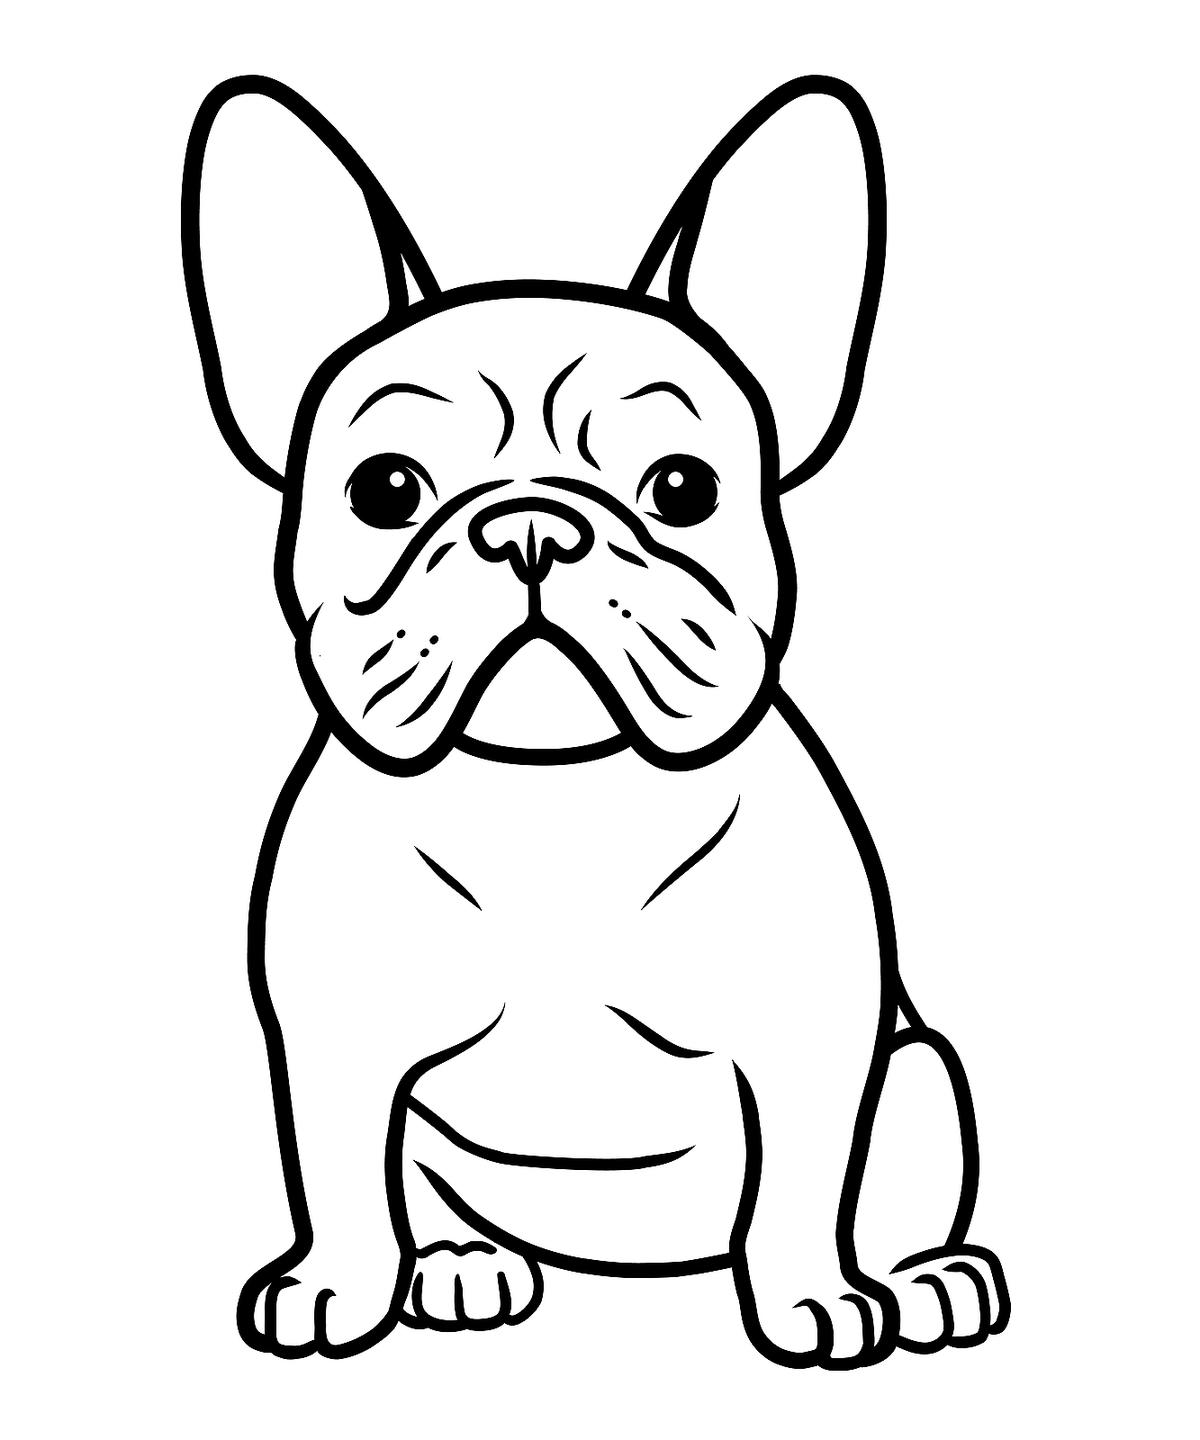 coloring pages to print dogs puppy dog pals coloring pages at getcoloringscom free pages coloring to dogs print